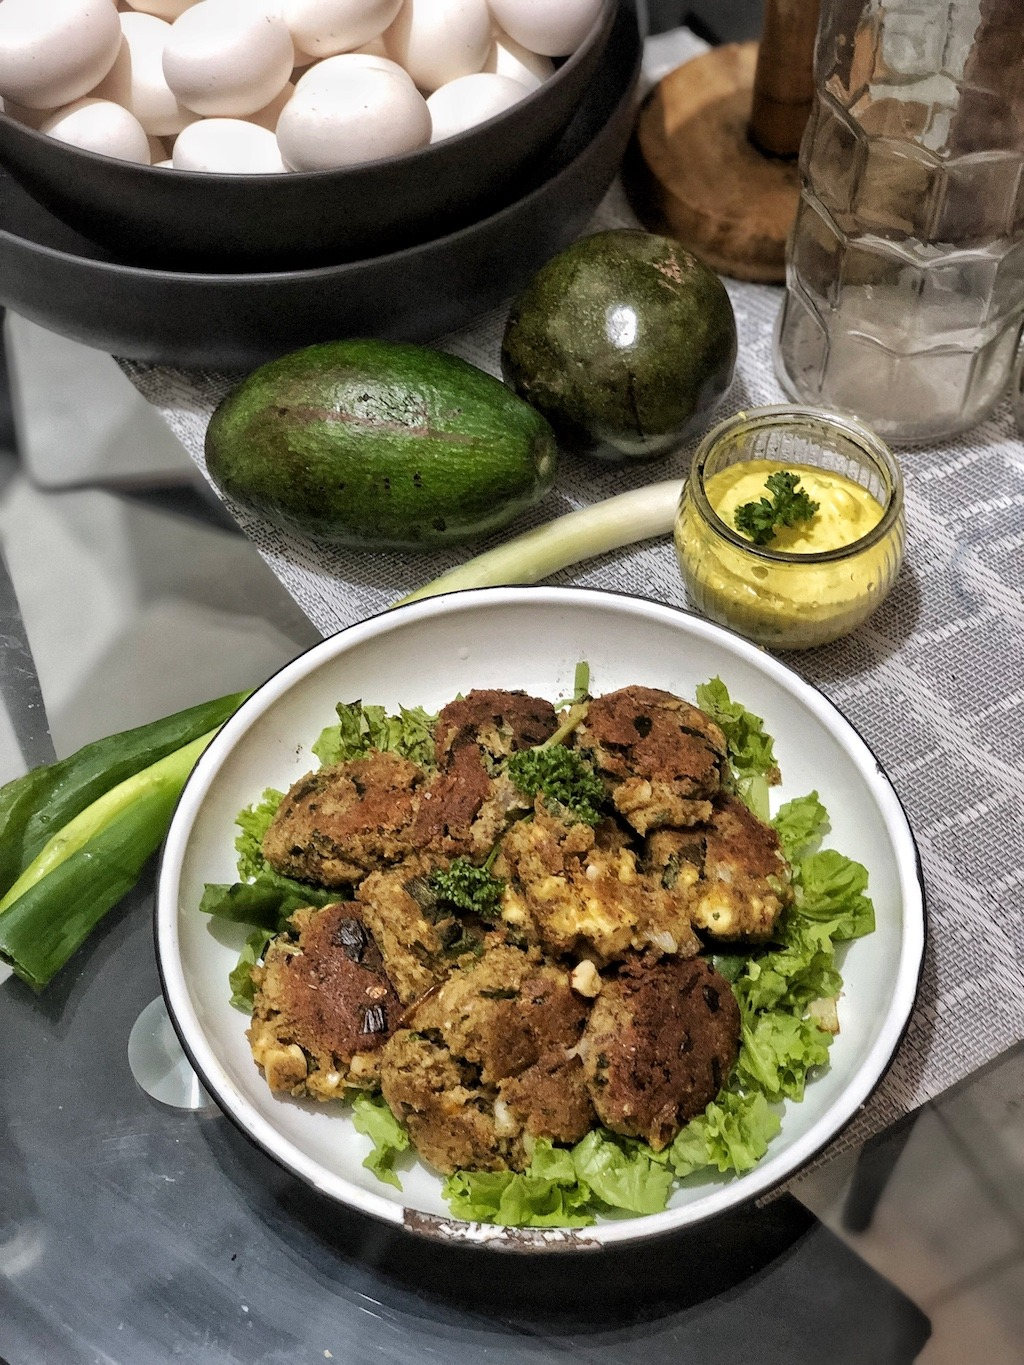 Canned Tuna Sardines Fish Cake - Healthy Keto Low Carb